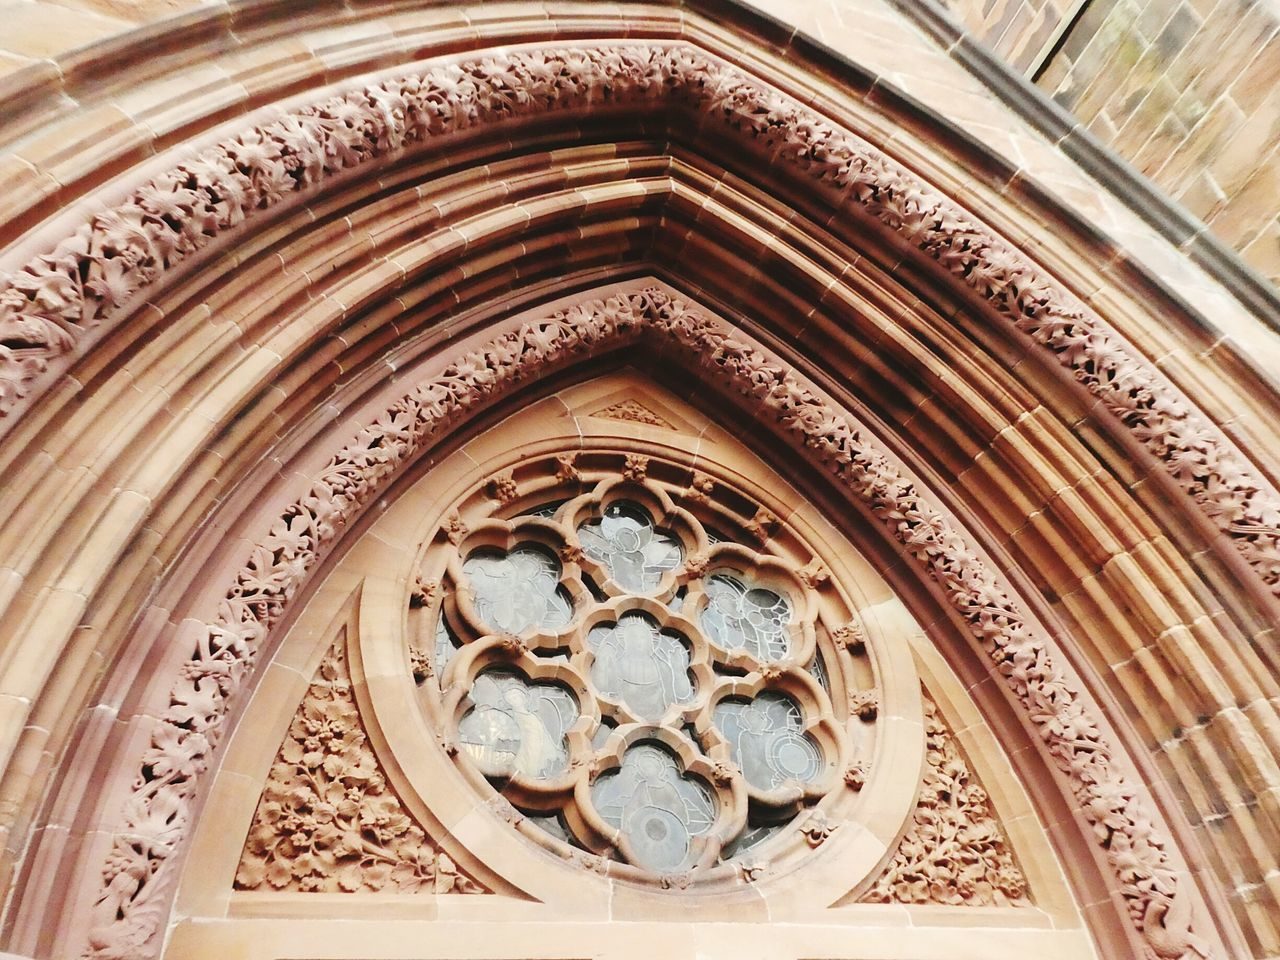 Carlislecathedral Beautiful Carved Stone Arch Stained Glass Window Red Sandstone Medieval Architecture No People 1122AD Built Structure Low Angle View Heritage Site Stone Carving Medieval Church Historical Architecture Building Exterior Detailed To Perfection Wonderful History